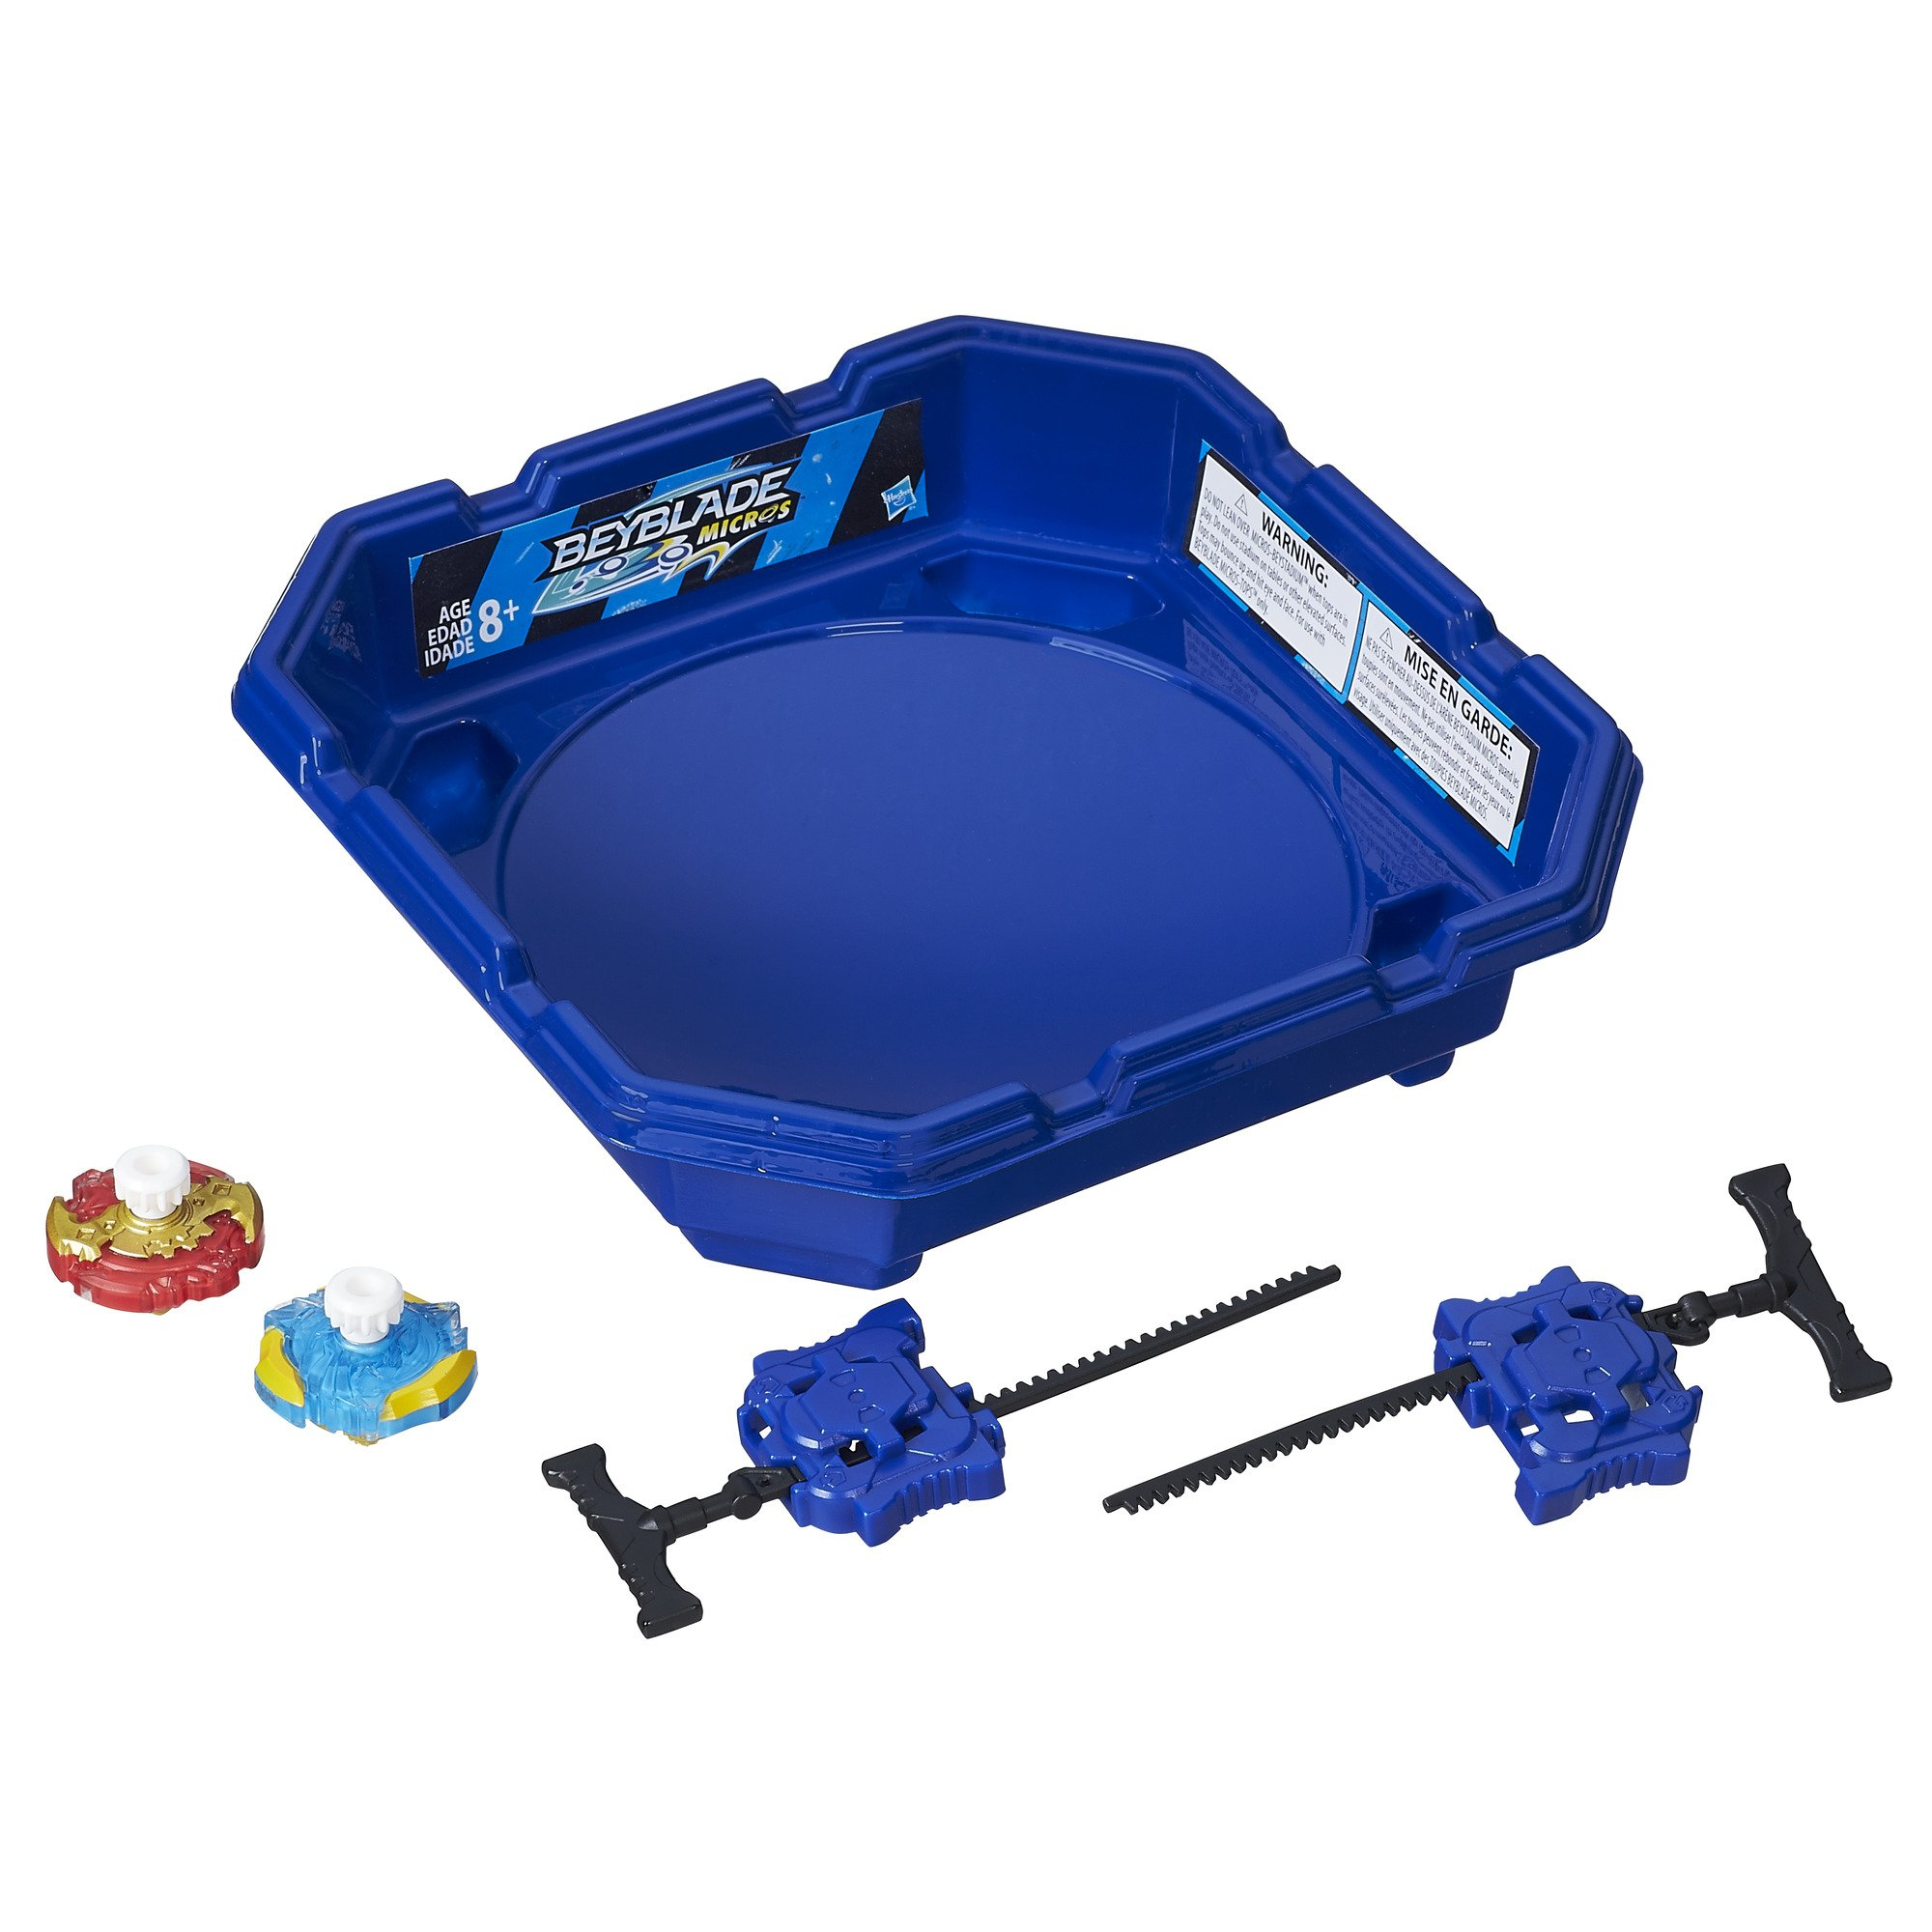 Hasbro Beyblade Burst Mini Top 2-Player Starter Set by Hasbro